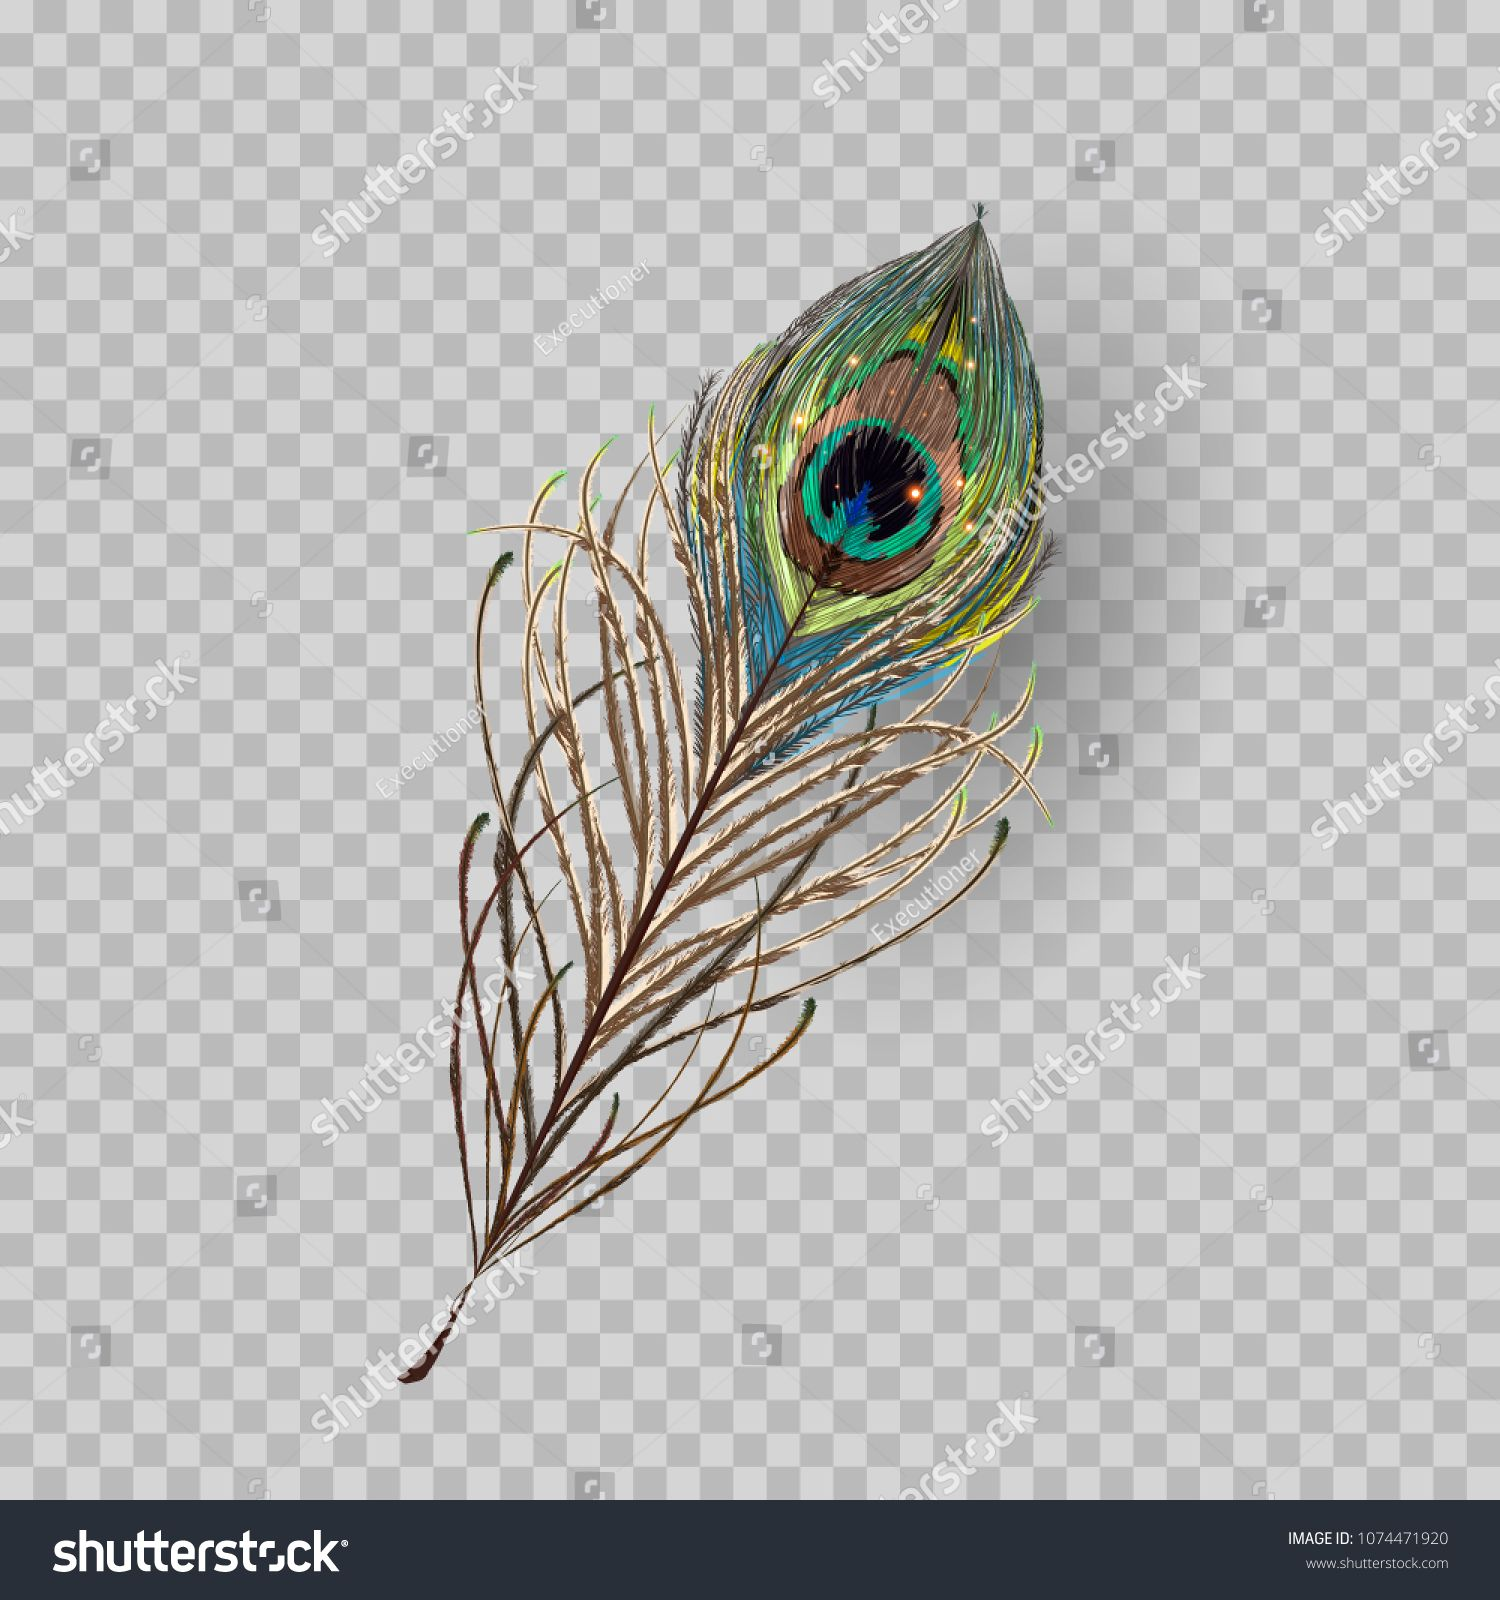 peacock feather on transparent background in realistic style vector illustrationtransparent background peac peacock images peacock feather baby cartoon drawing peacock feather on transparent